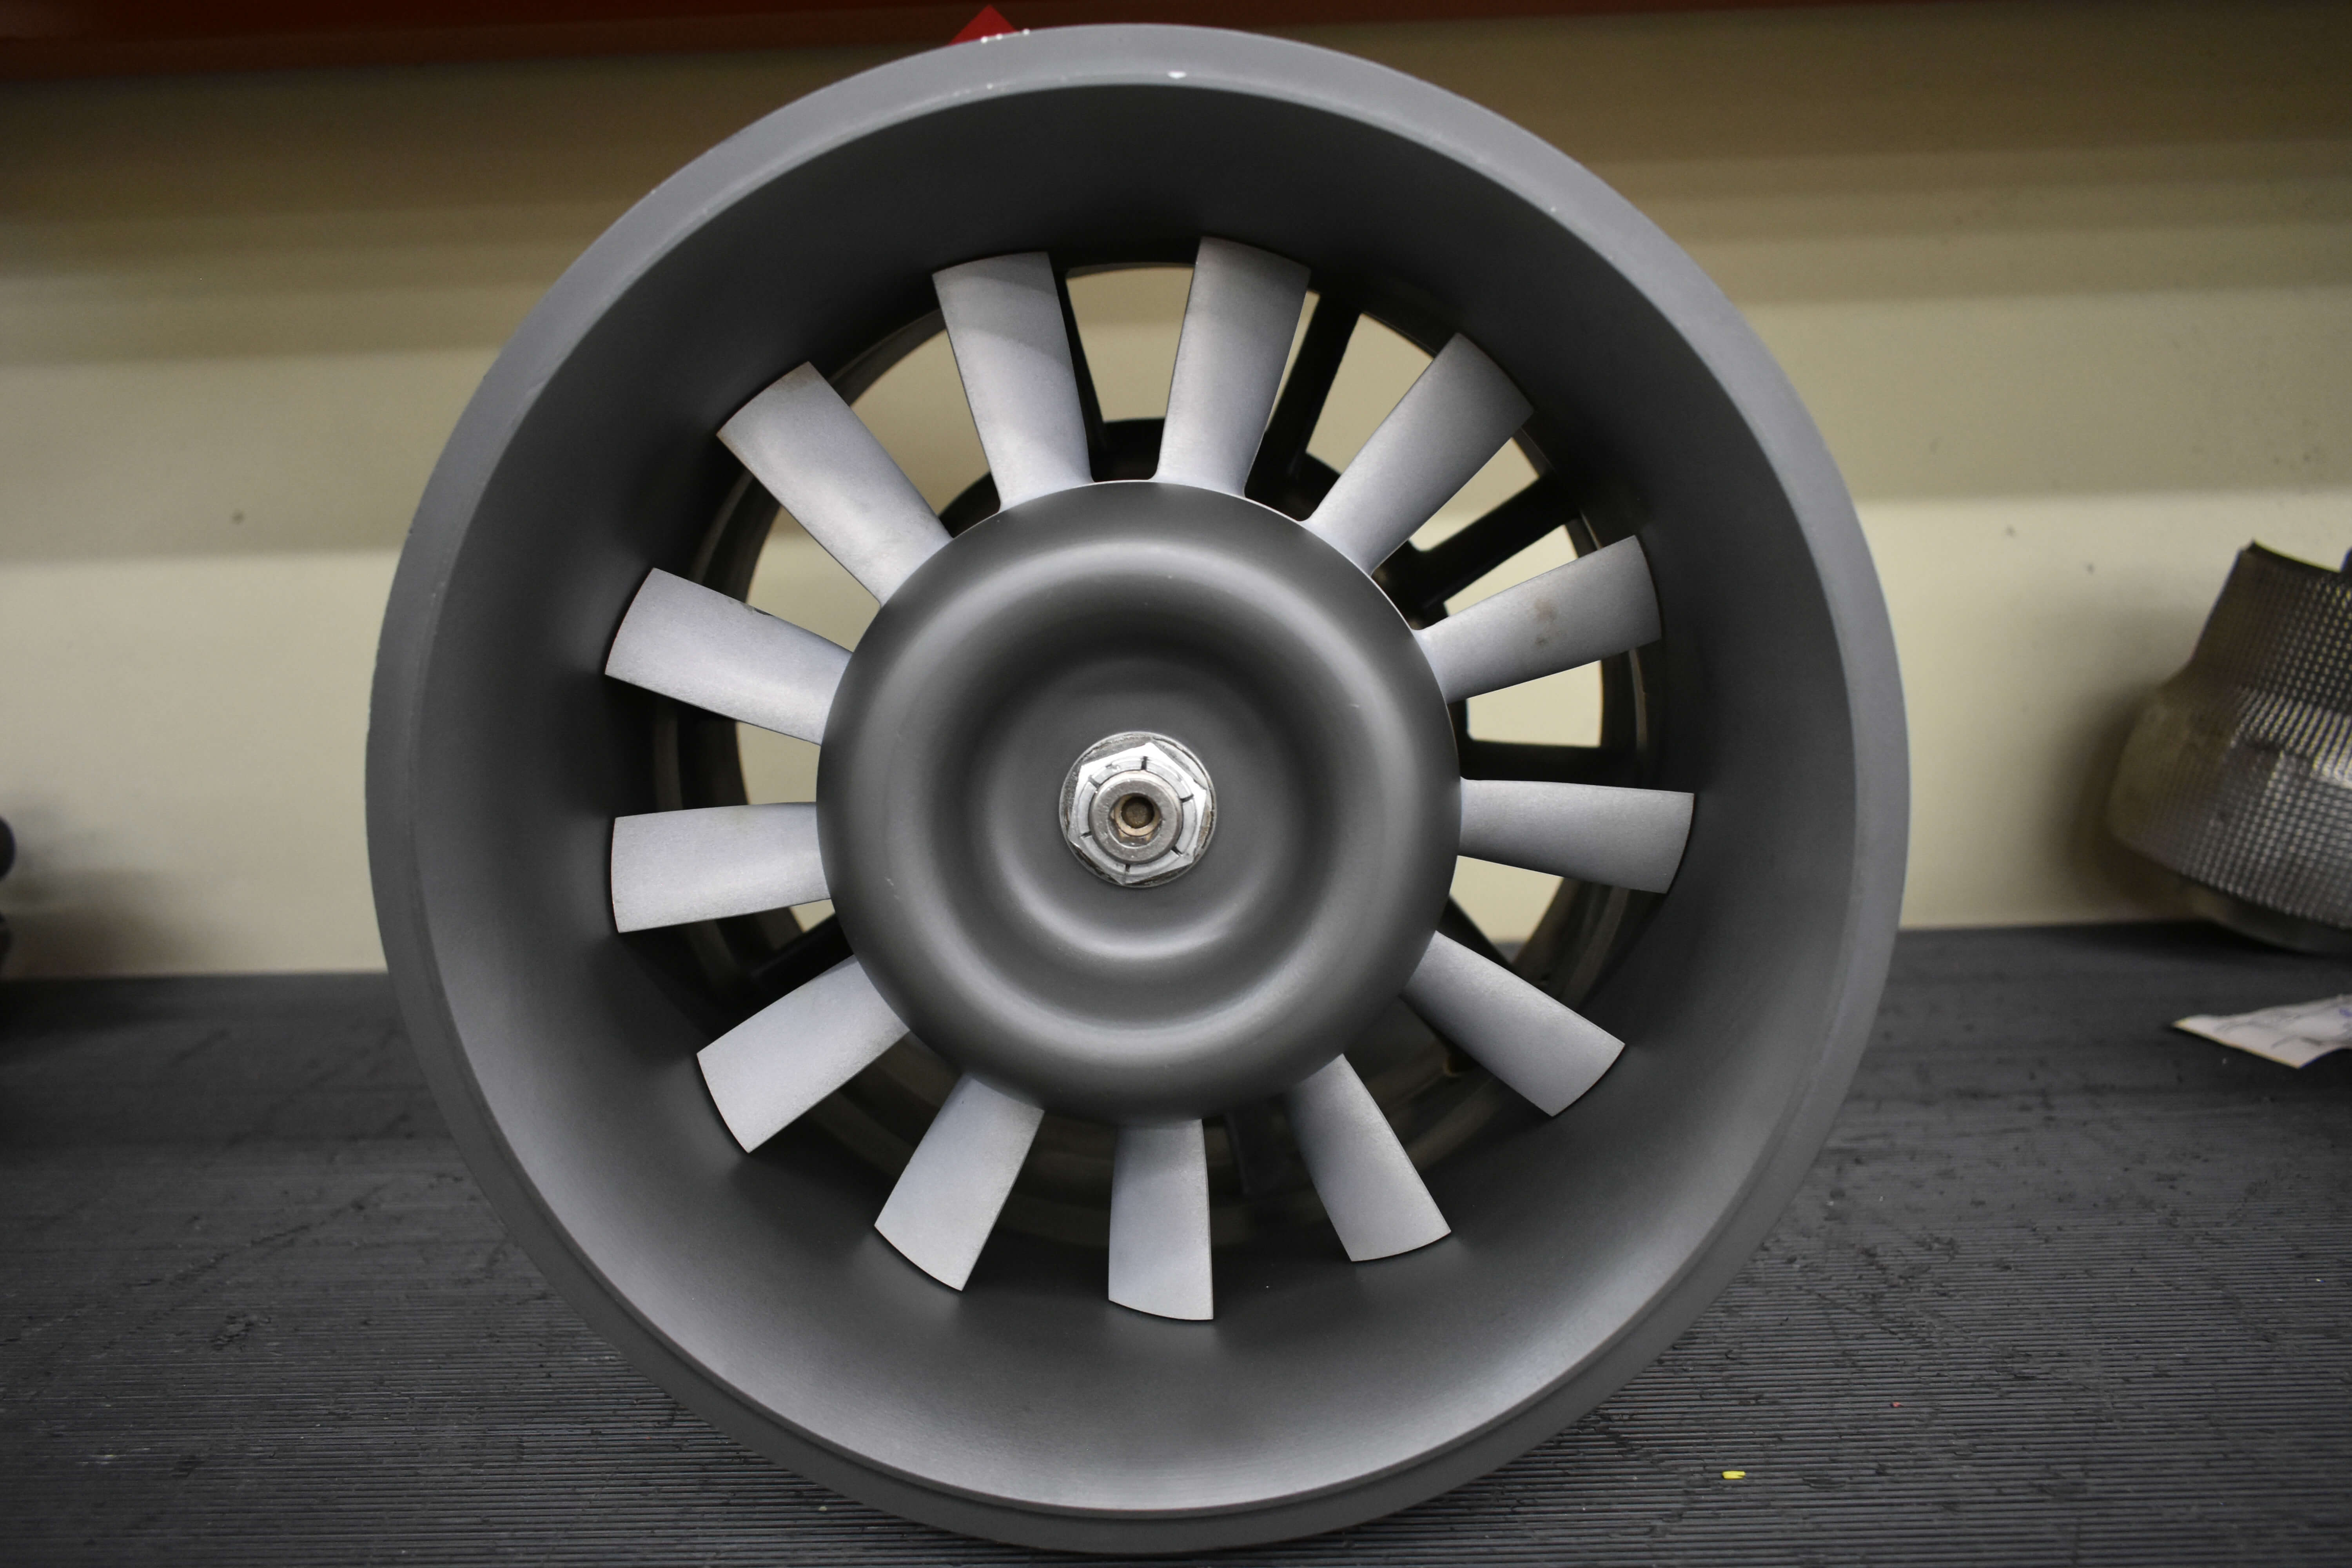 Outgoing B737 turbine driven vane axial fan after functional test and inspection